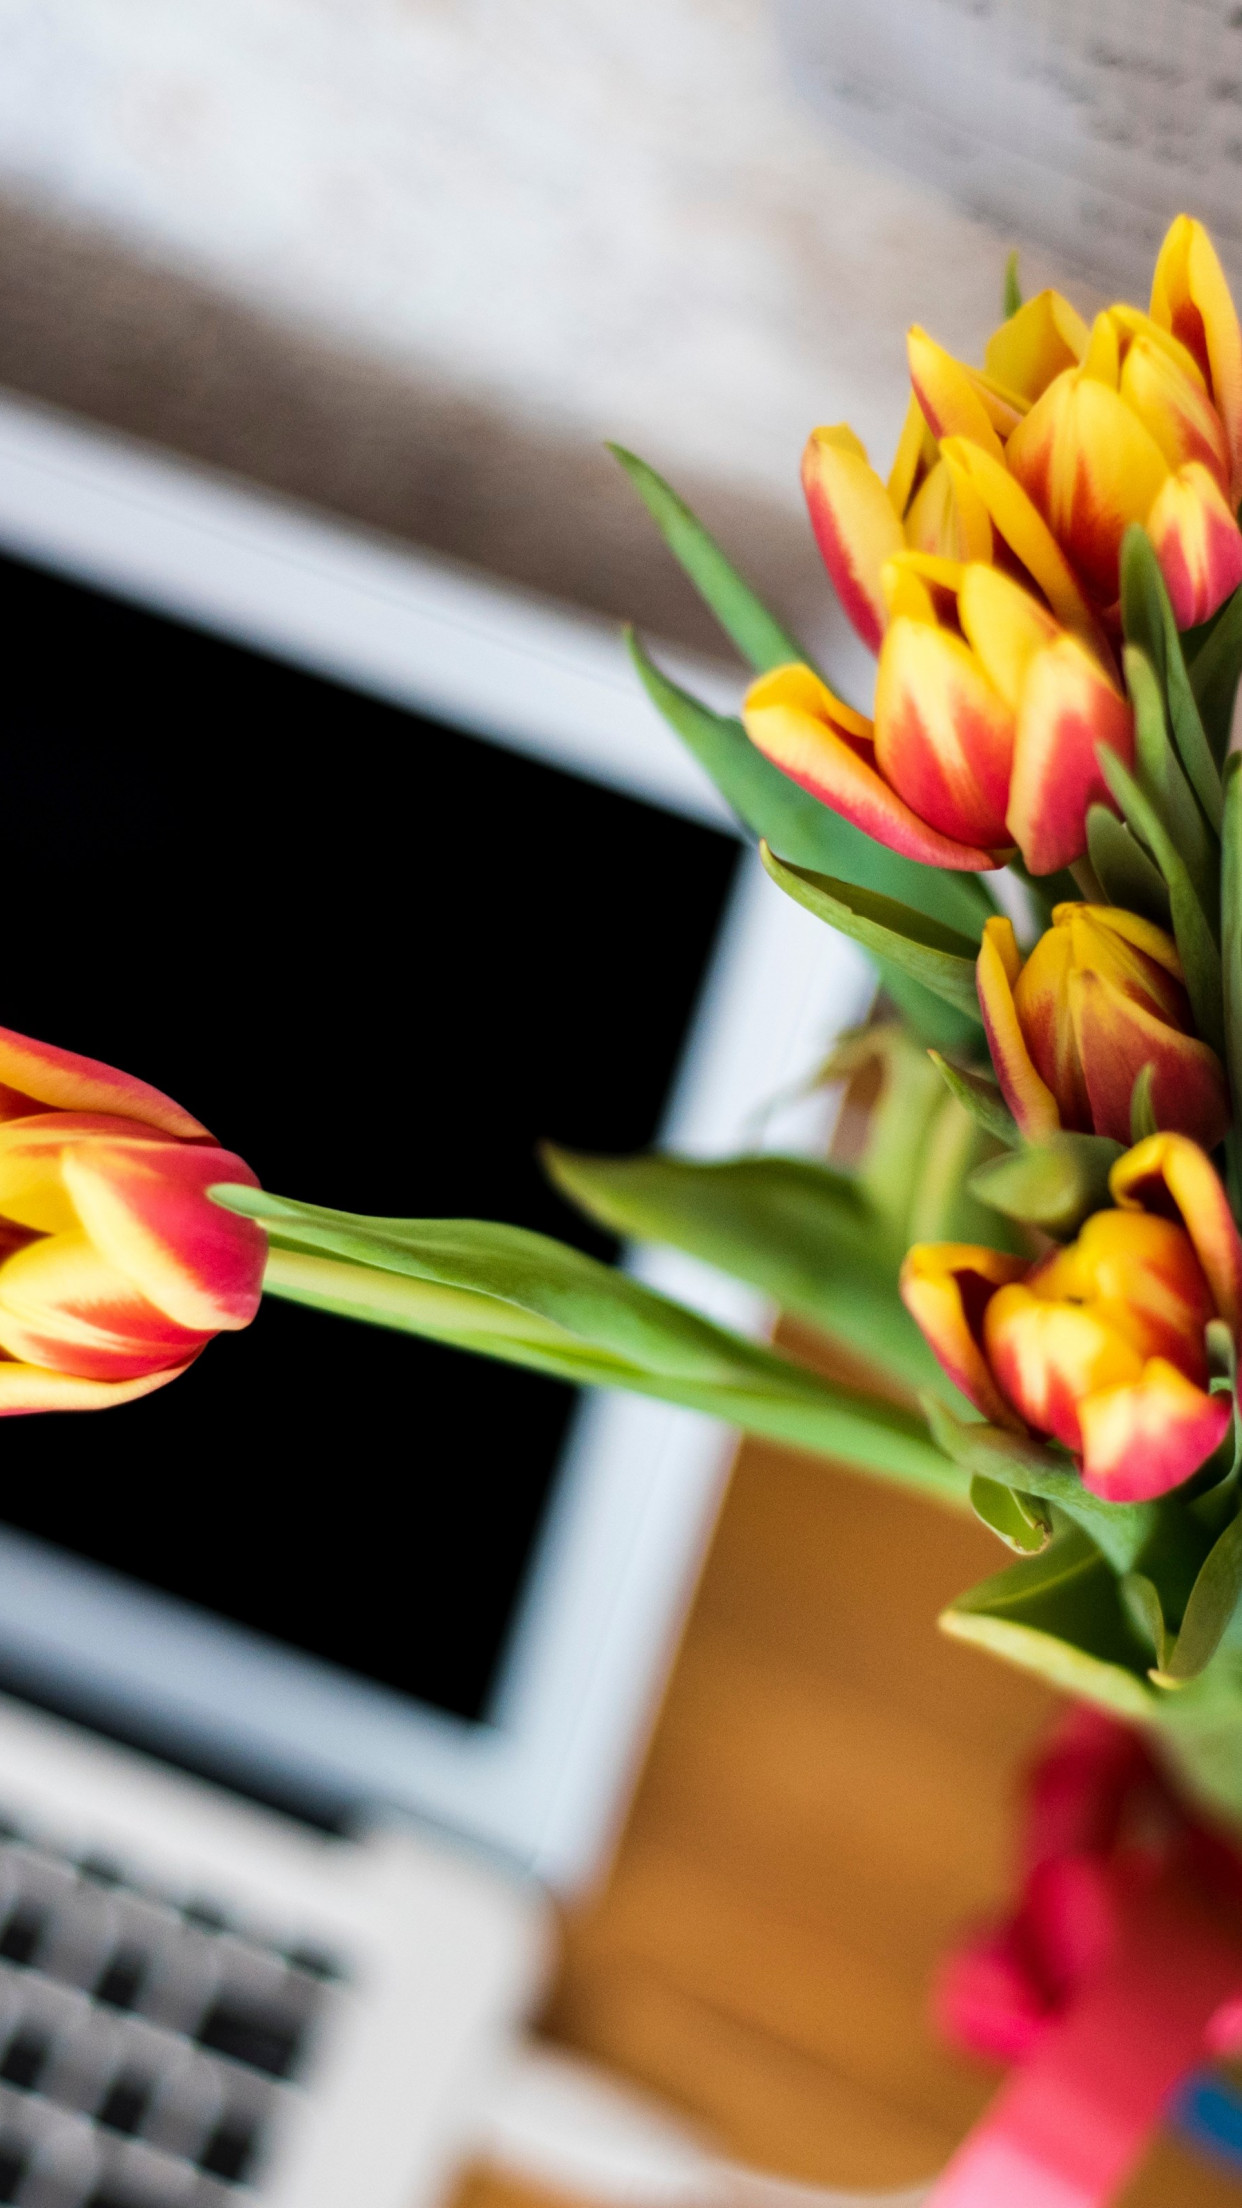 Laptop and tulips bouquet wallpaper 1242x2208